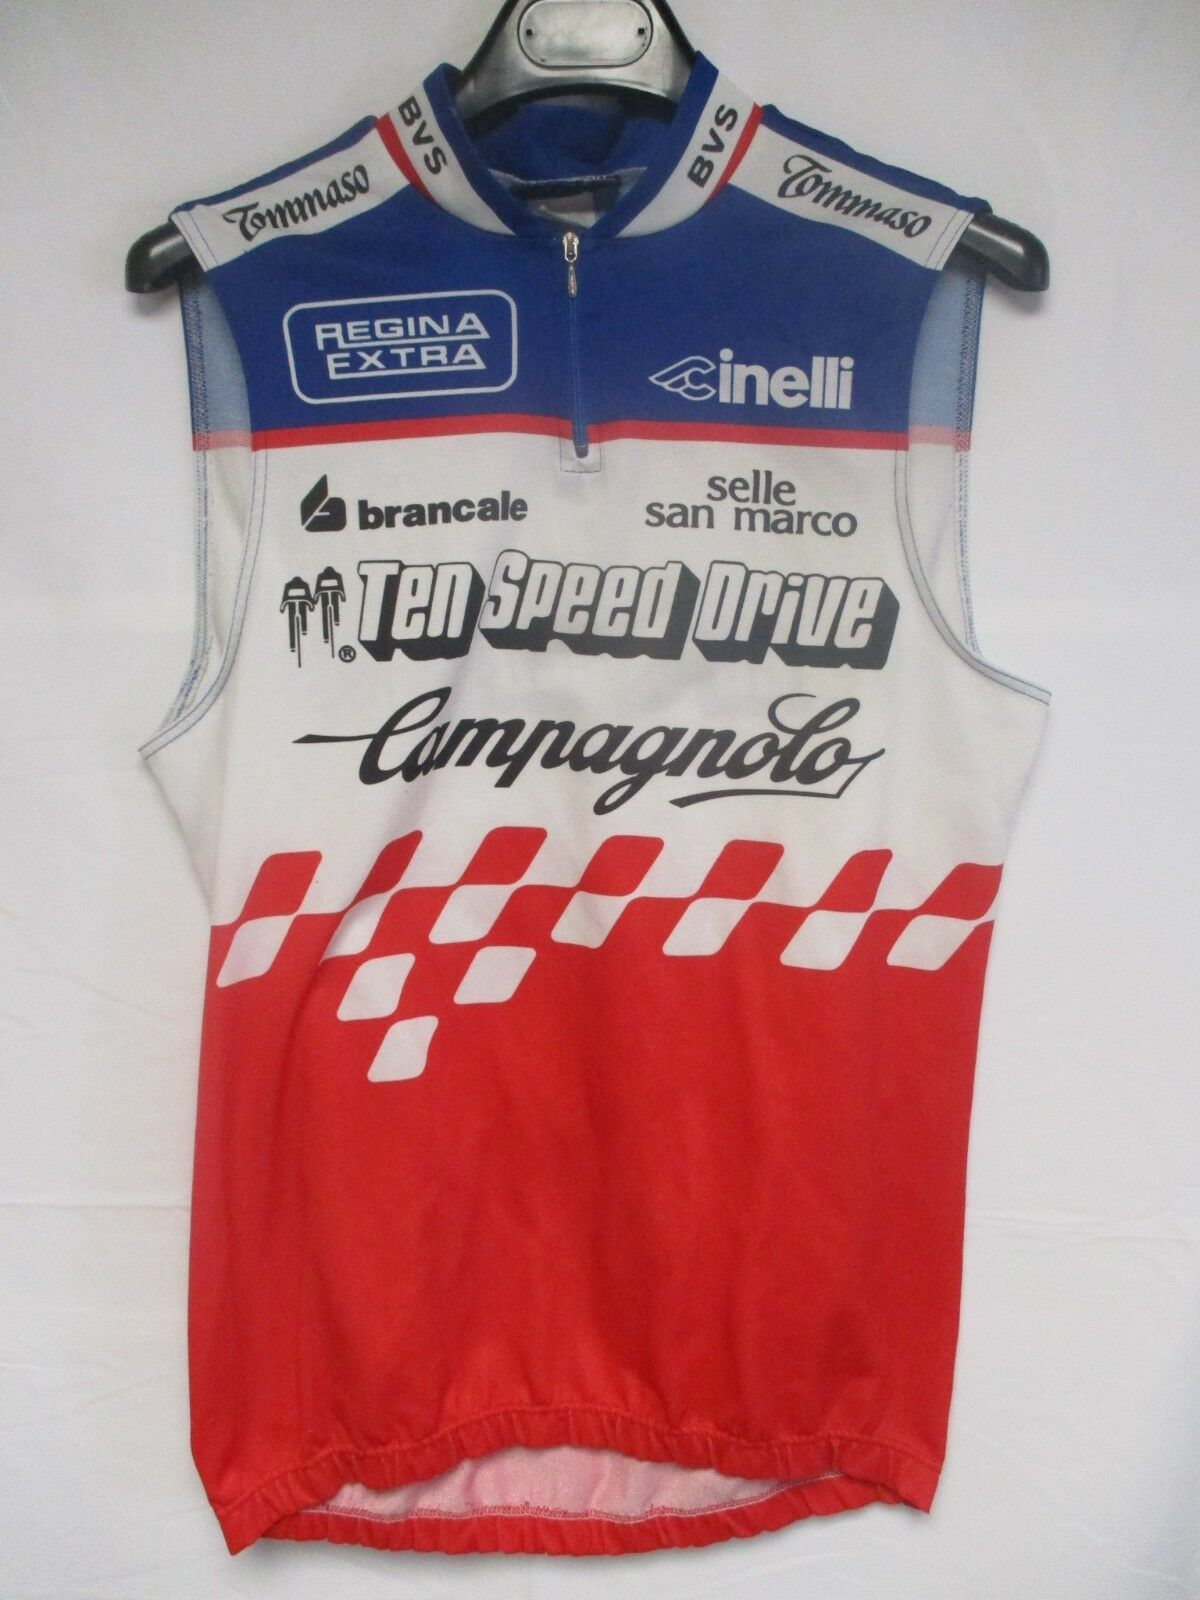 Maillot cycliste TEN SPEED DRIVE  CAMPAGNOLO shirt maglia jersey trikot vintage  online retailers